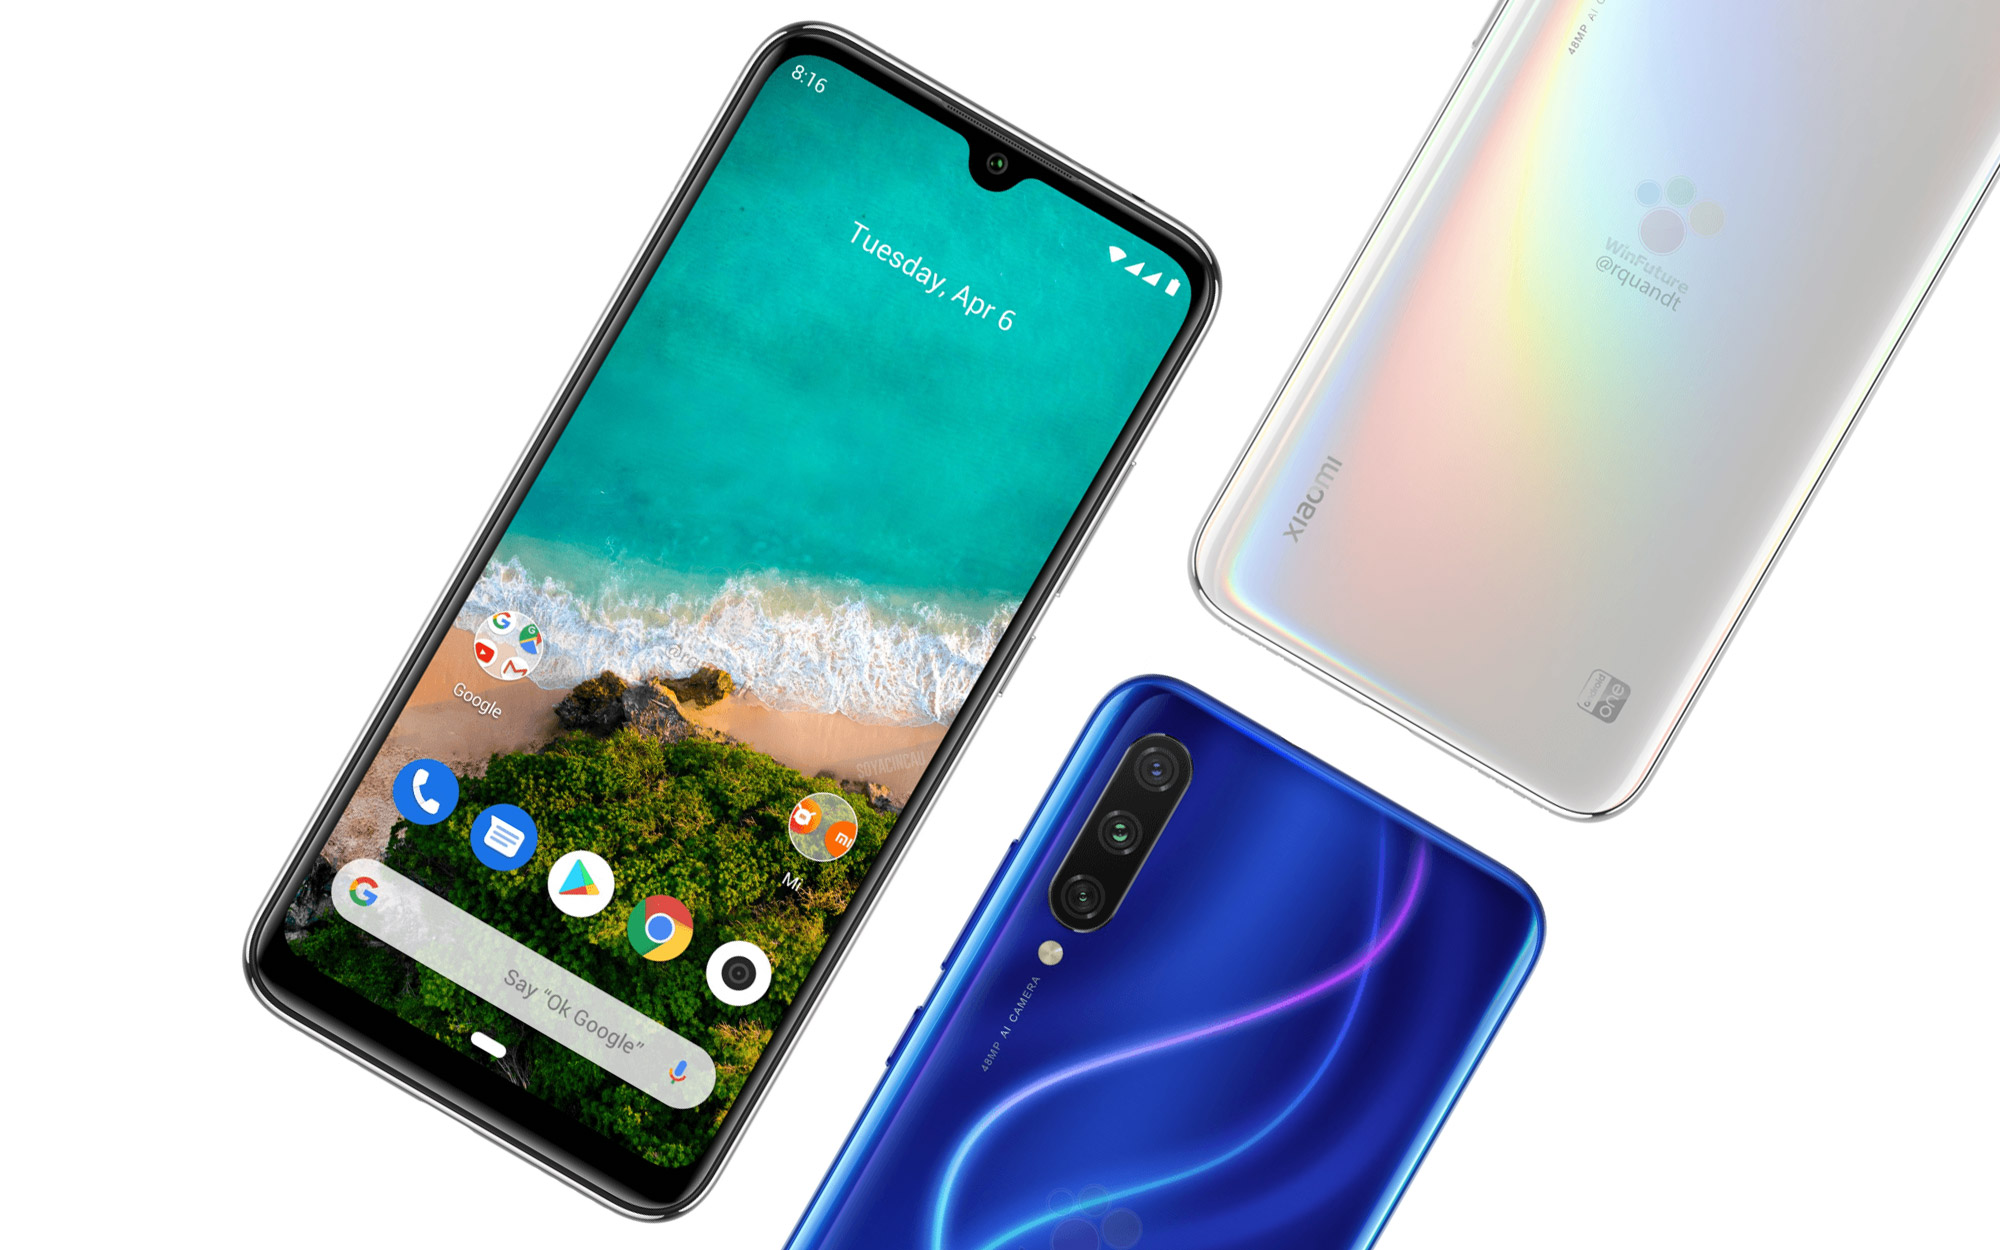 This is the Mi A3, Xiaomi's new pure Android smartphone